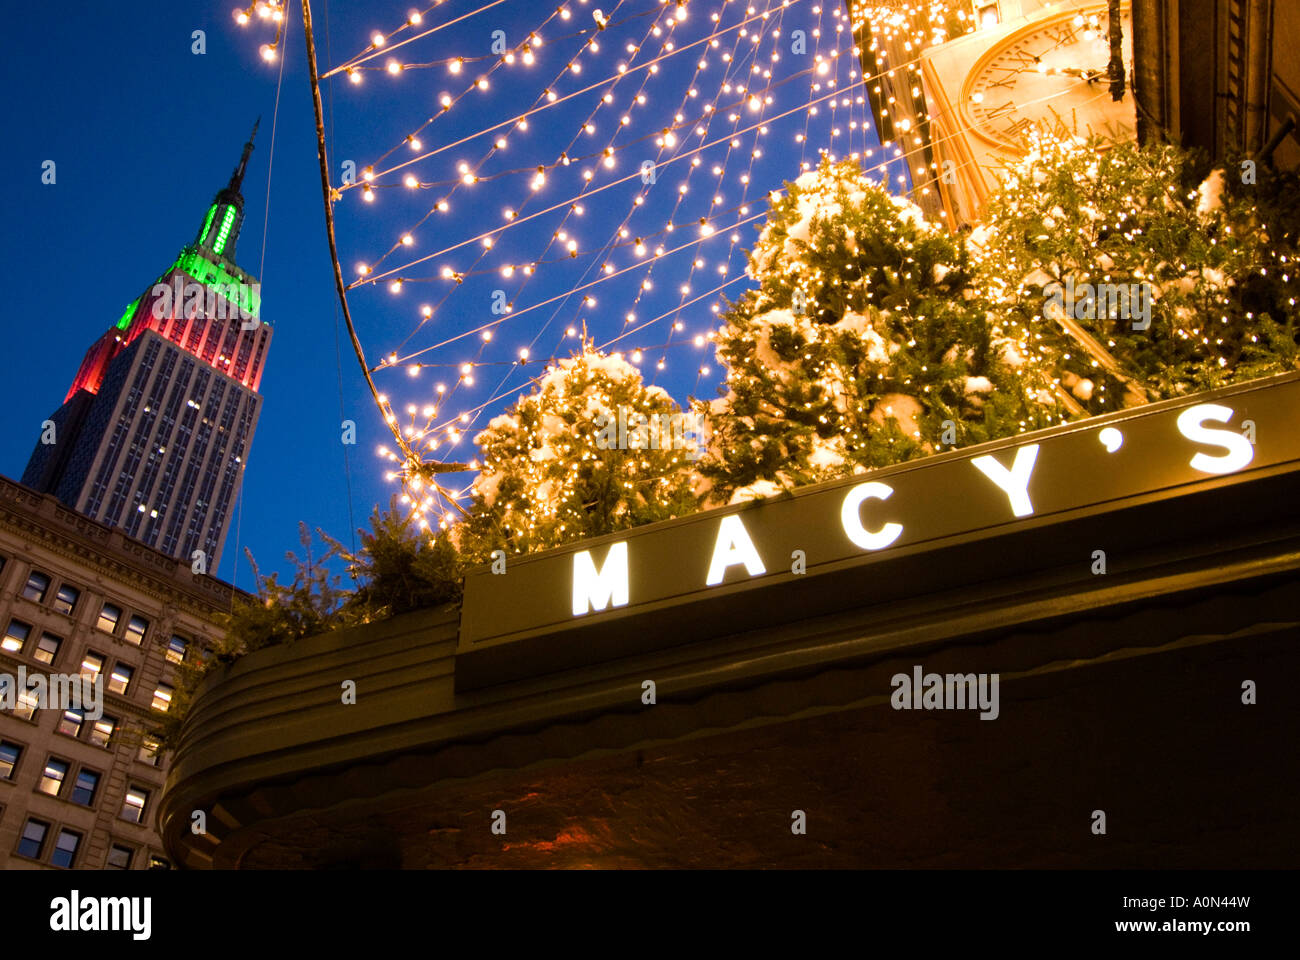 Macy s department store sign during Christmas season with view to ...